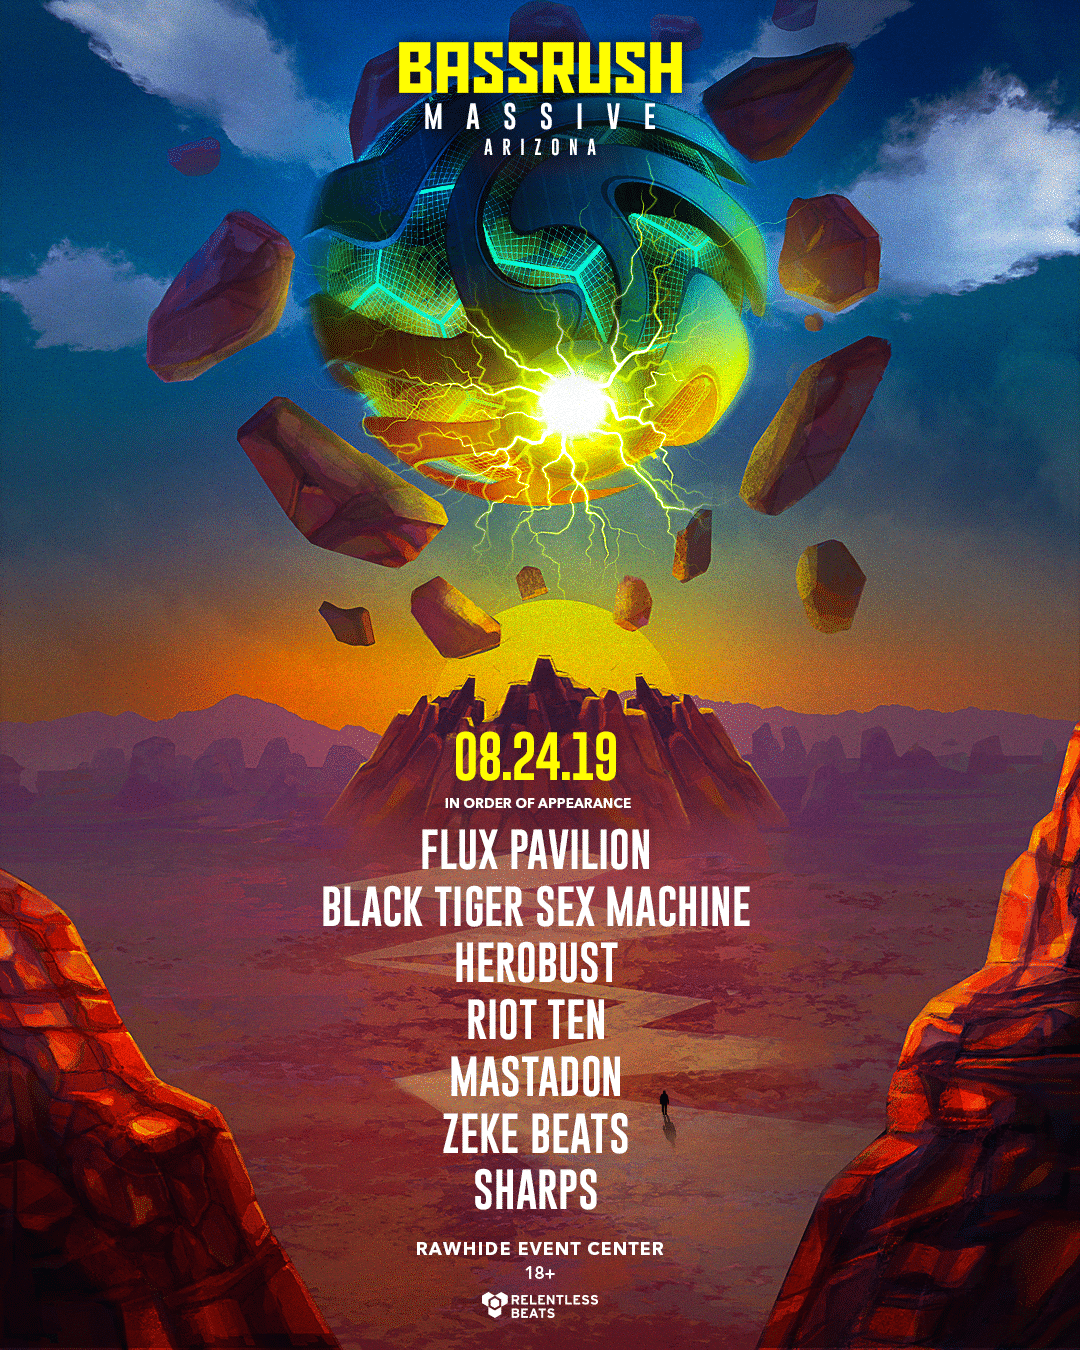 Relentless Beats Announces Bassrush Massive Arizona - Relentless Beats Announces Bassrush Massive Arizona, August 24, 2019